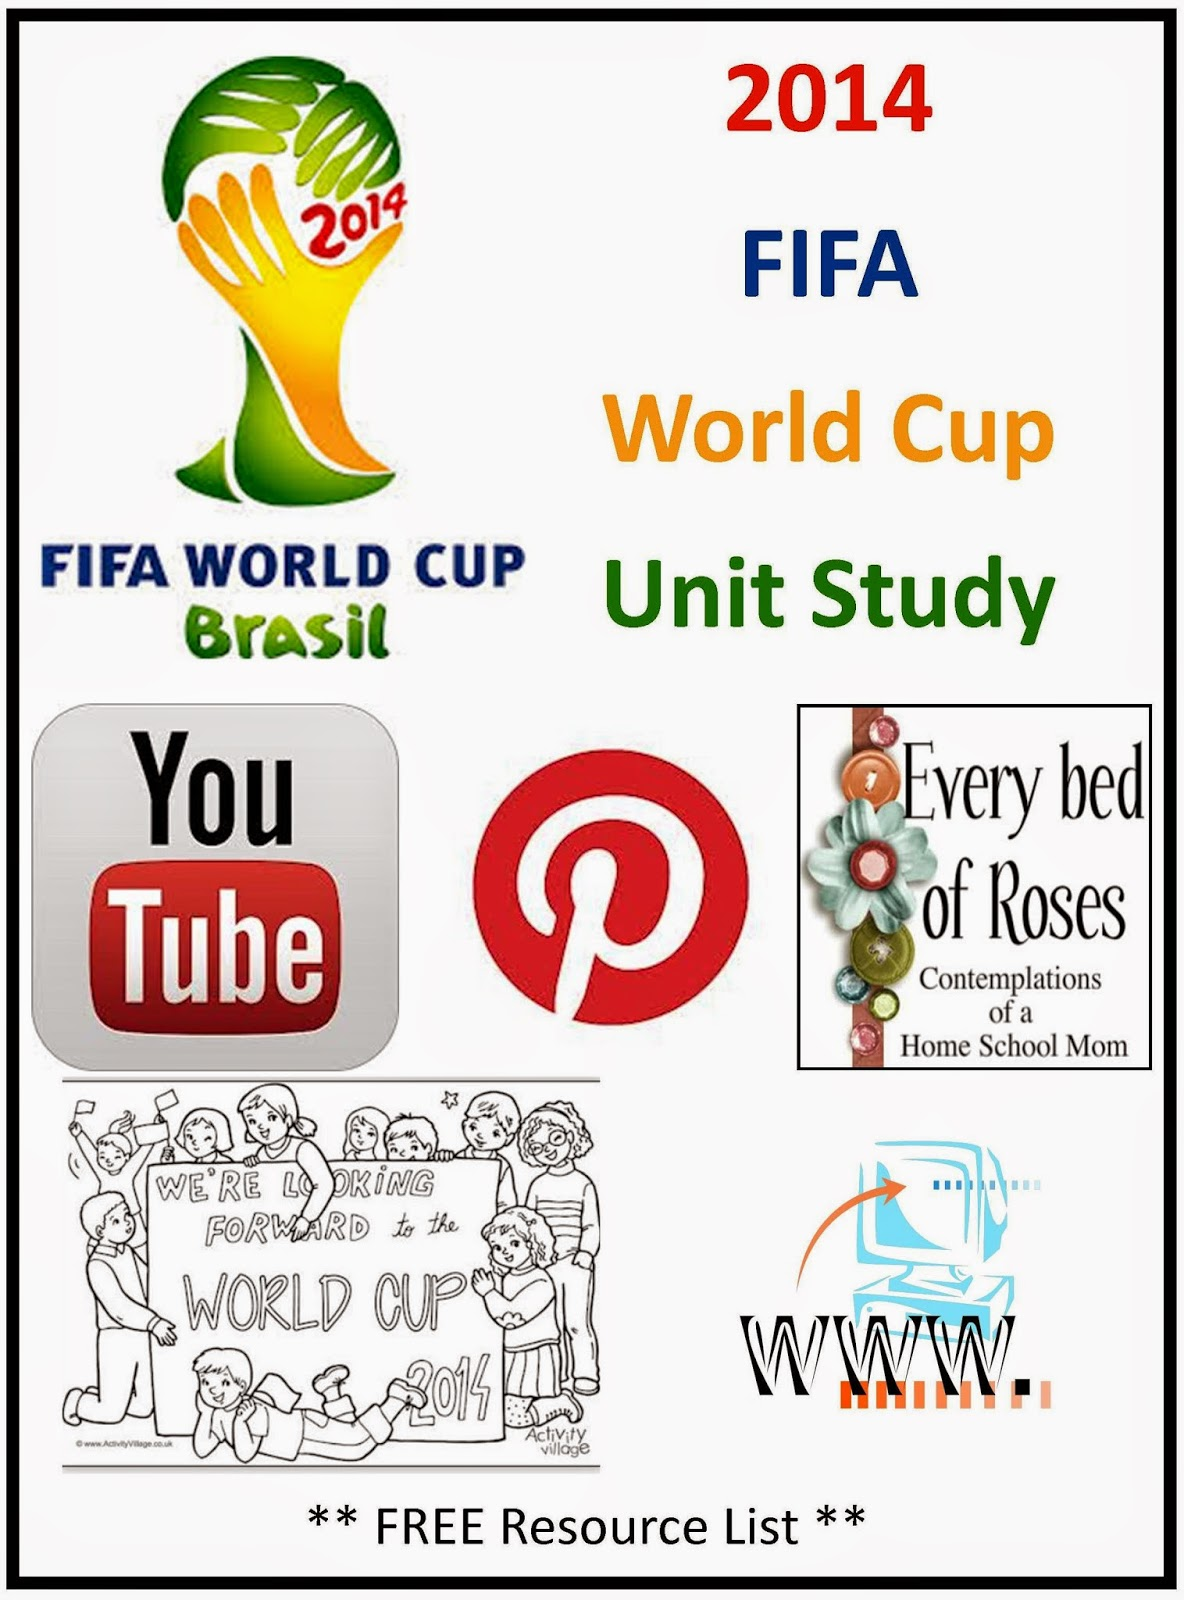 Every Bed Of Roses World Cup Soccer Unit Study Resources